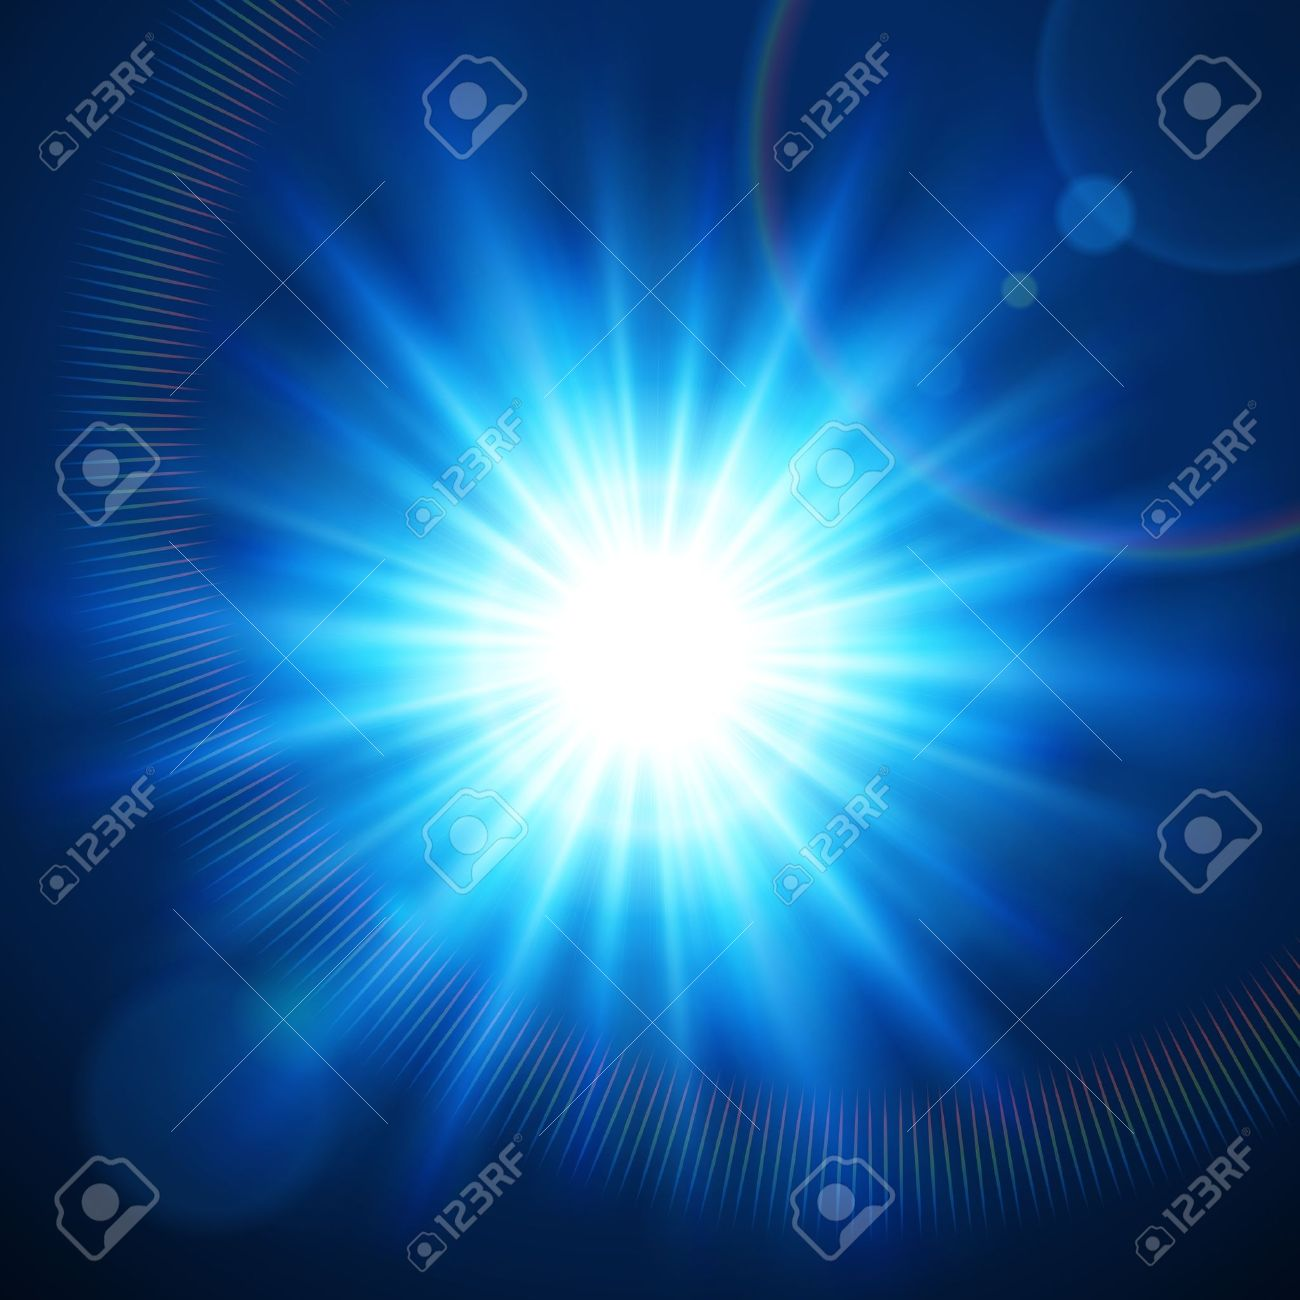 Abstraction Light With Lens Flare Vector Background Royalty Free.